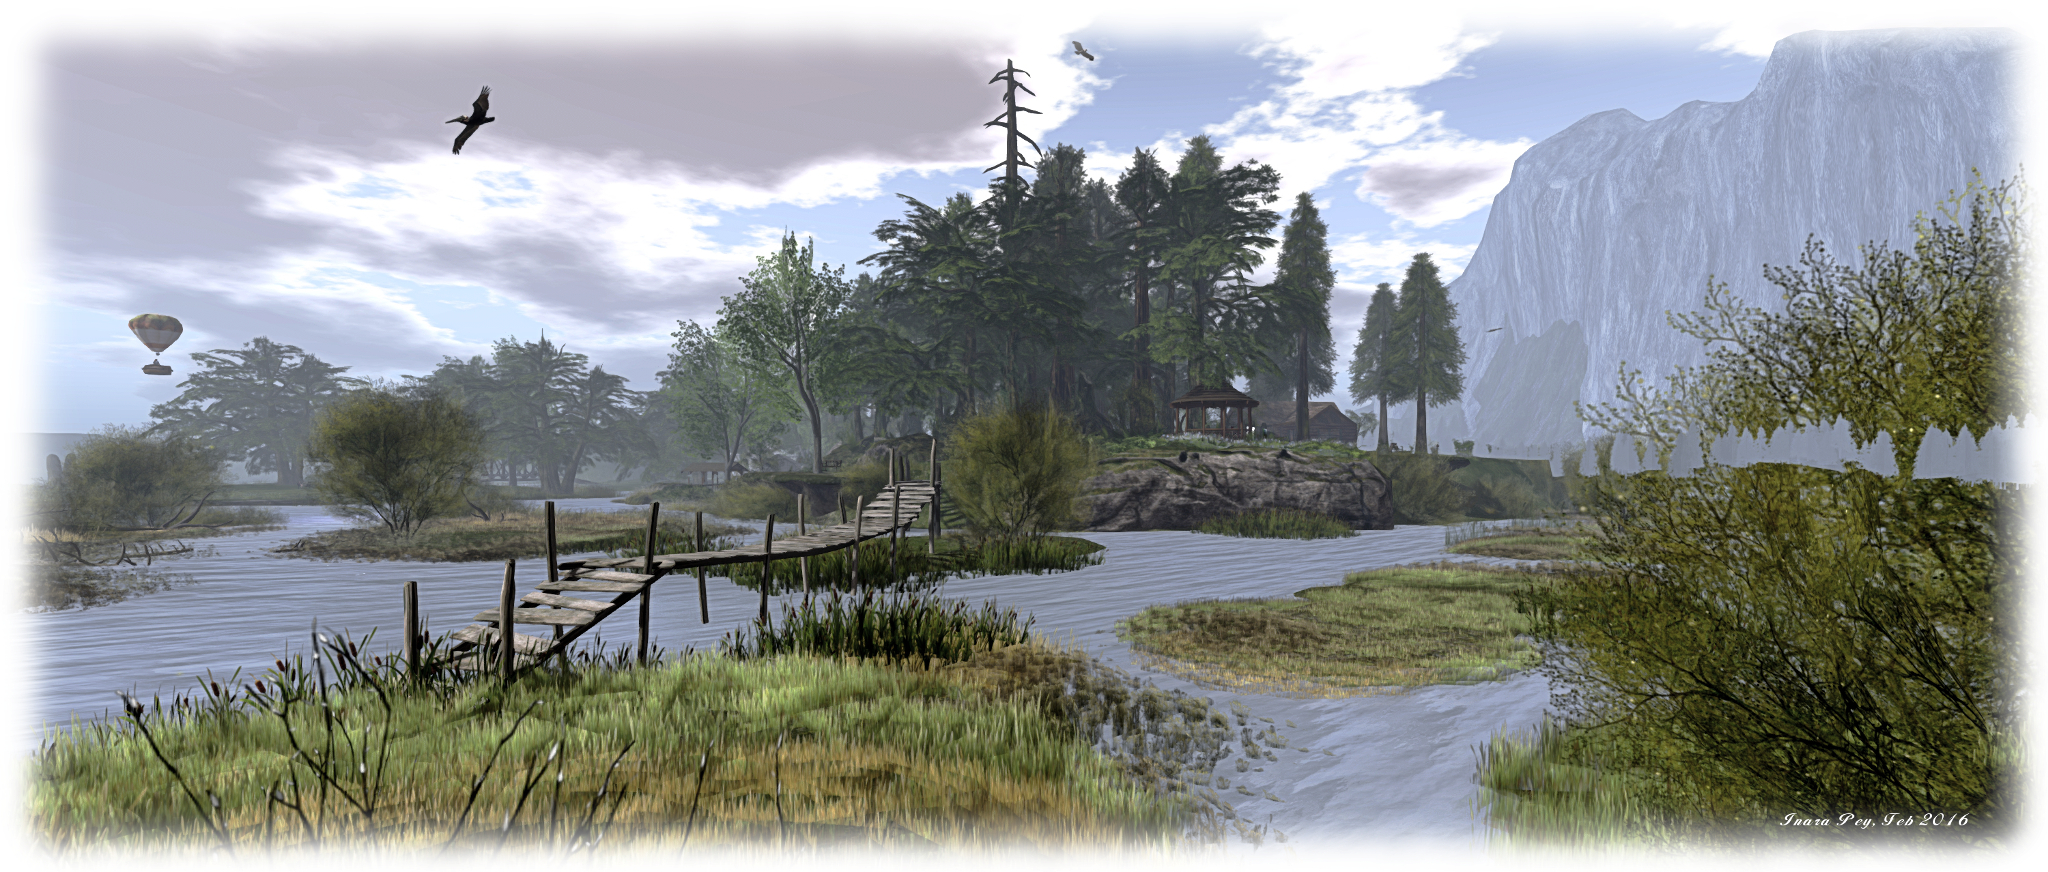 Calas Galadhon; Inara Pey, February 2016, on Flickr